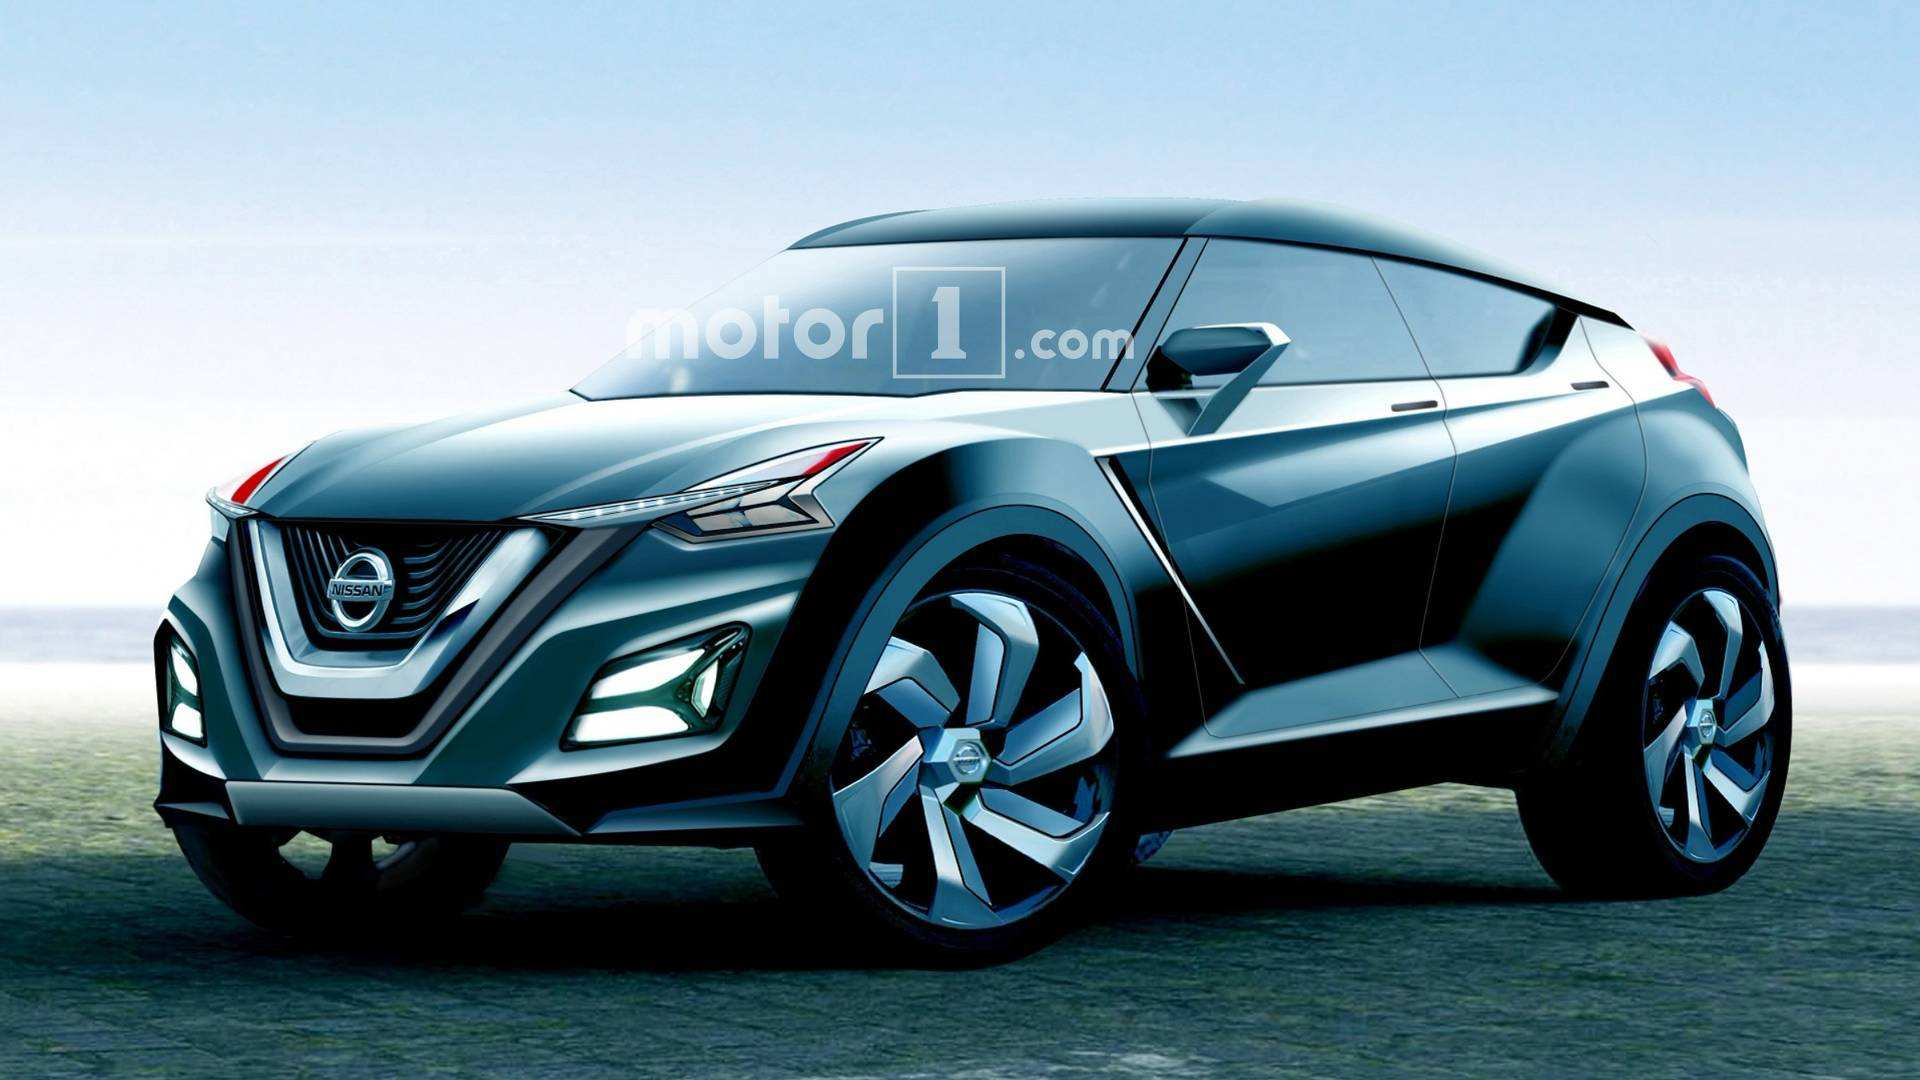 45 New Best Nissan 2019 Crossover Release Date And Specs Overview with Best Nissan 2019 Crossover Release Date And Specs